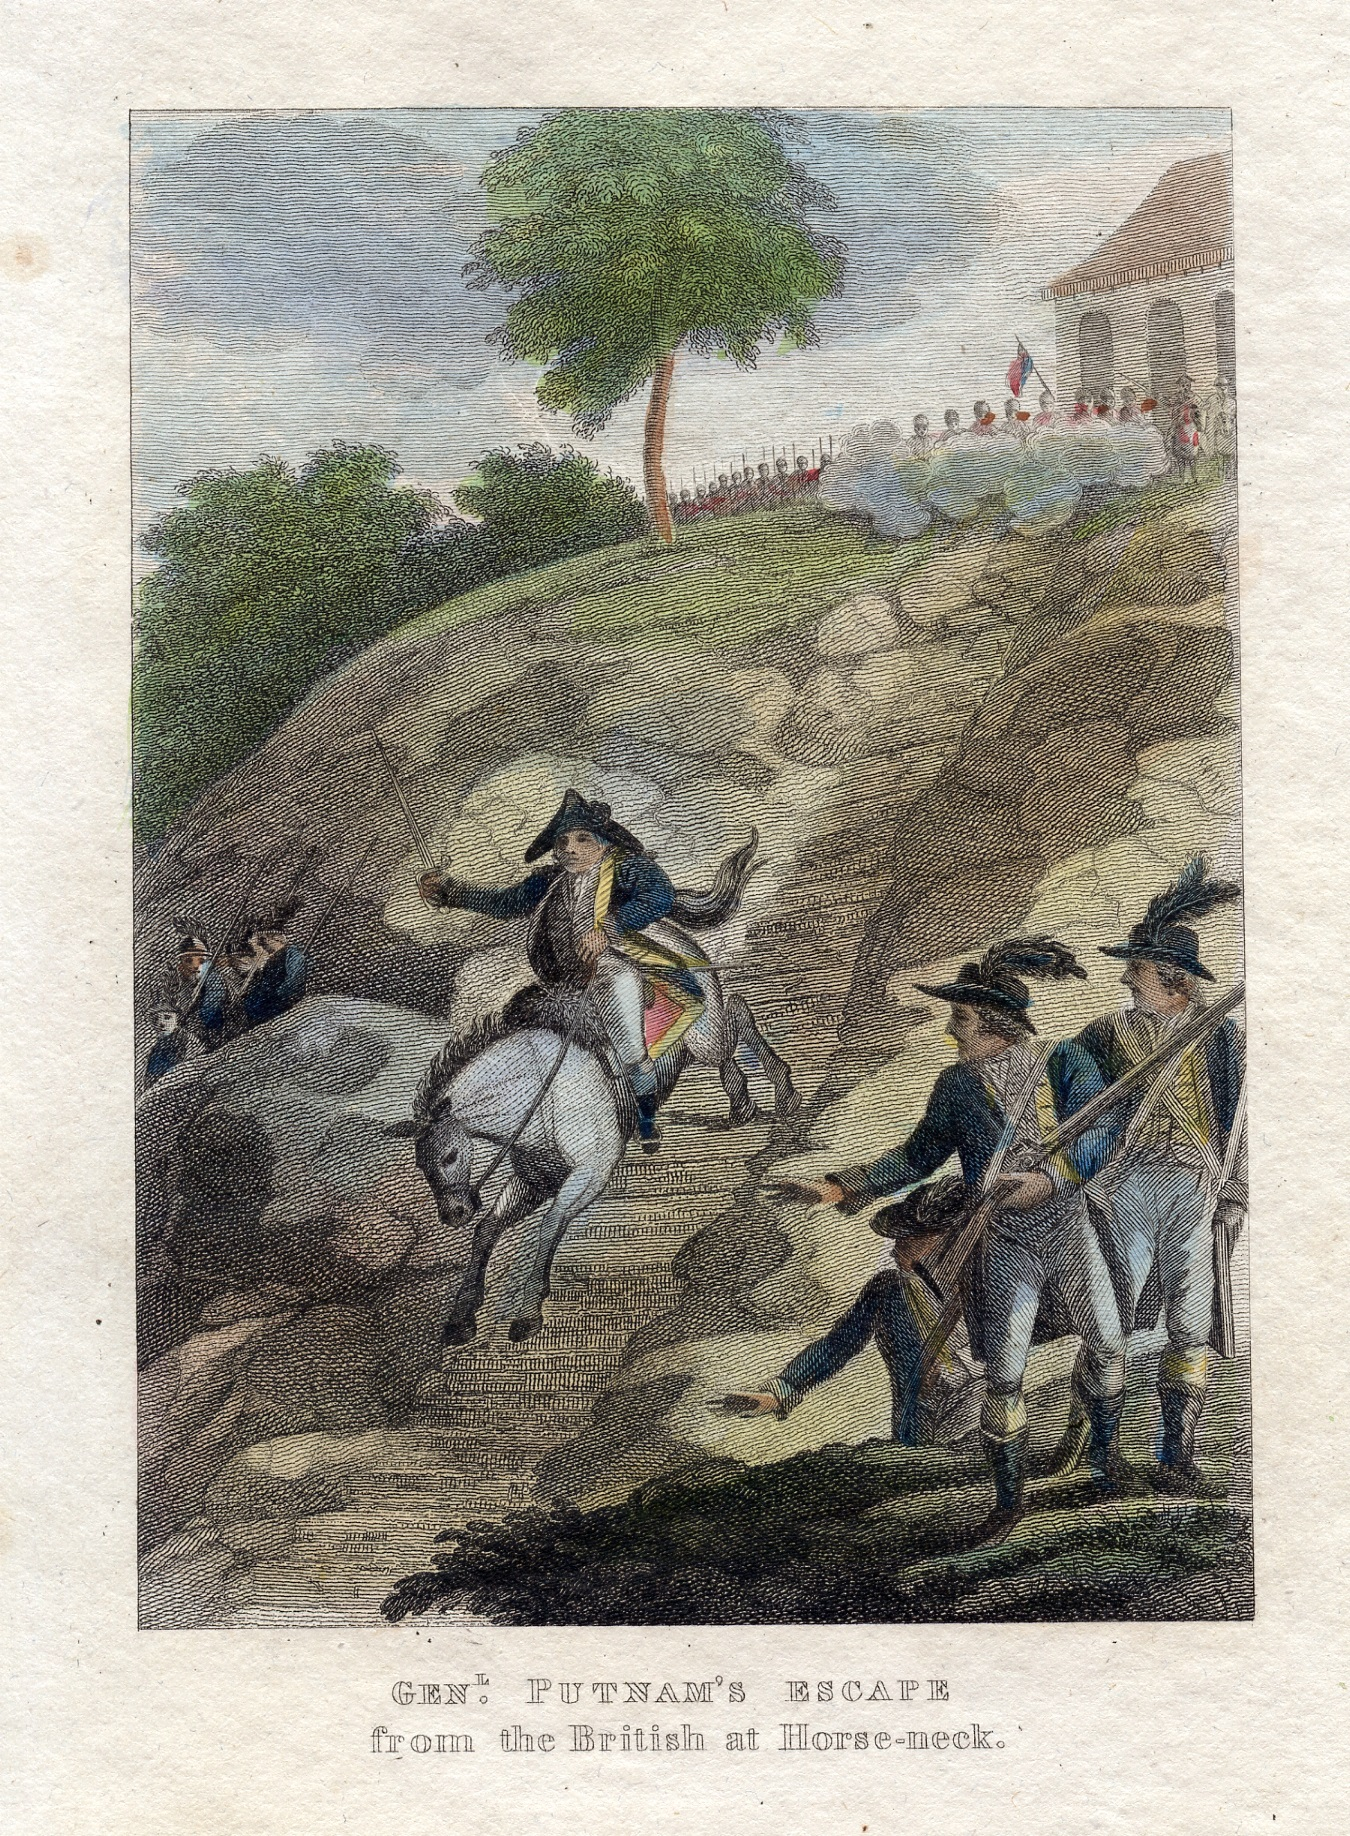 """Genl. Putnam's Escape from the British at Horse-neck,"" American Military Biography; Containing the Lives, Characters, and Anecdotes of the Officers of the Revolution, Hartford: Printed for the Subscribers; Roberts & Burr, Printers, 1825"